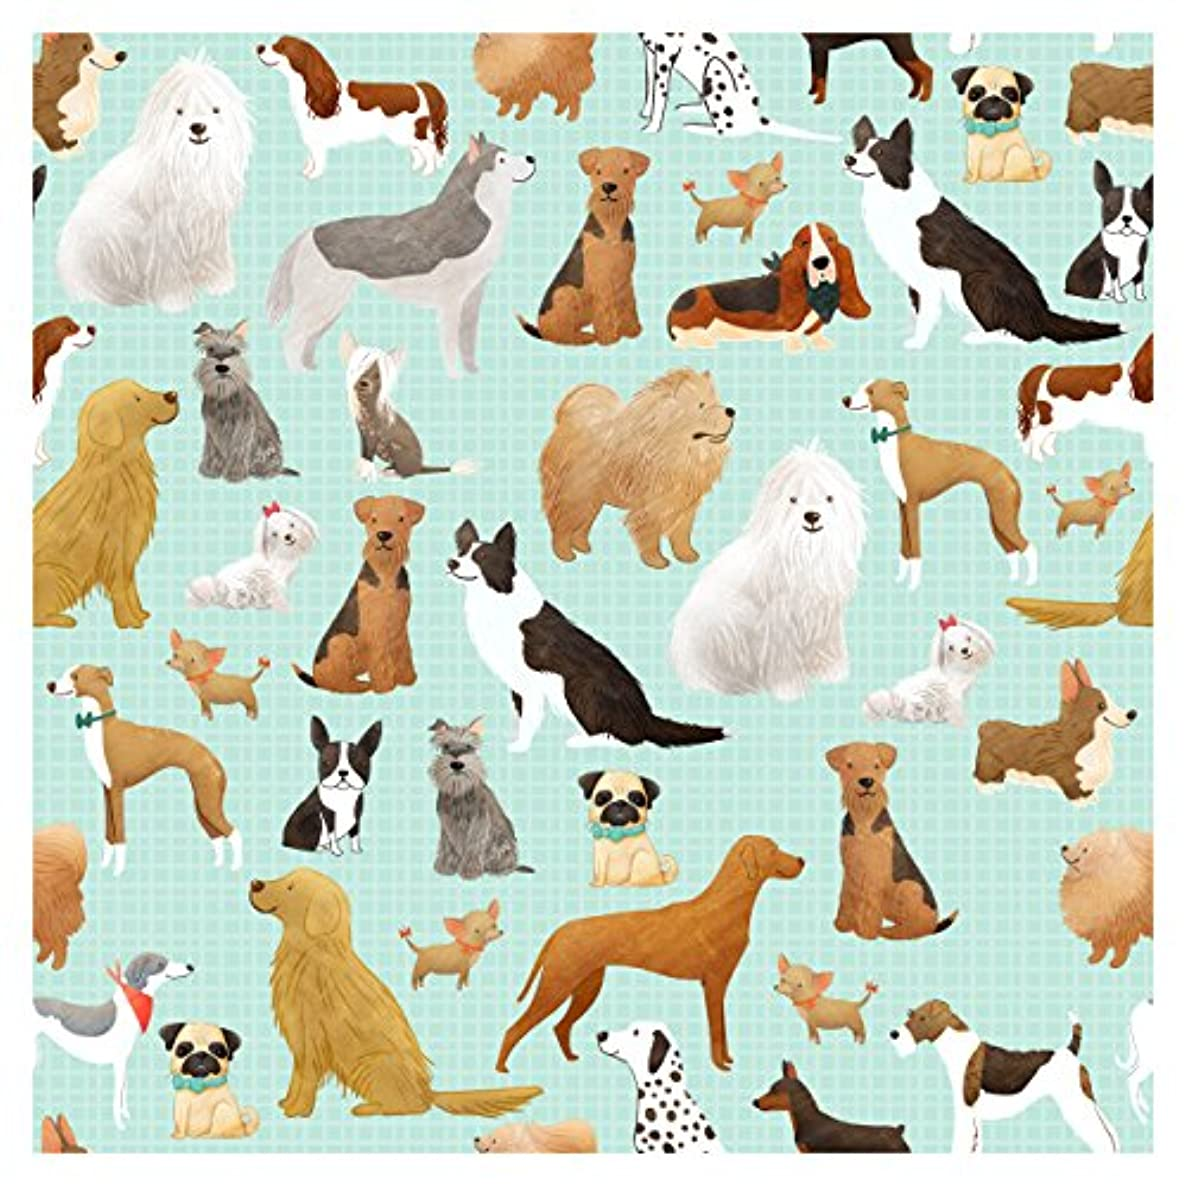 Jillson Roberts 6-Roll Count Premium Gift Wrap Available in 19 Different Designs, Best in Show